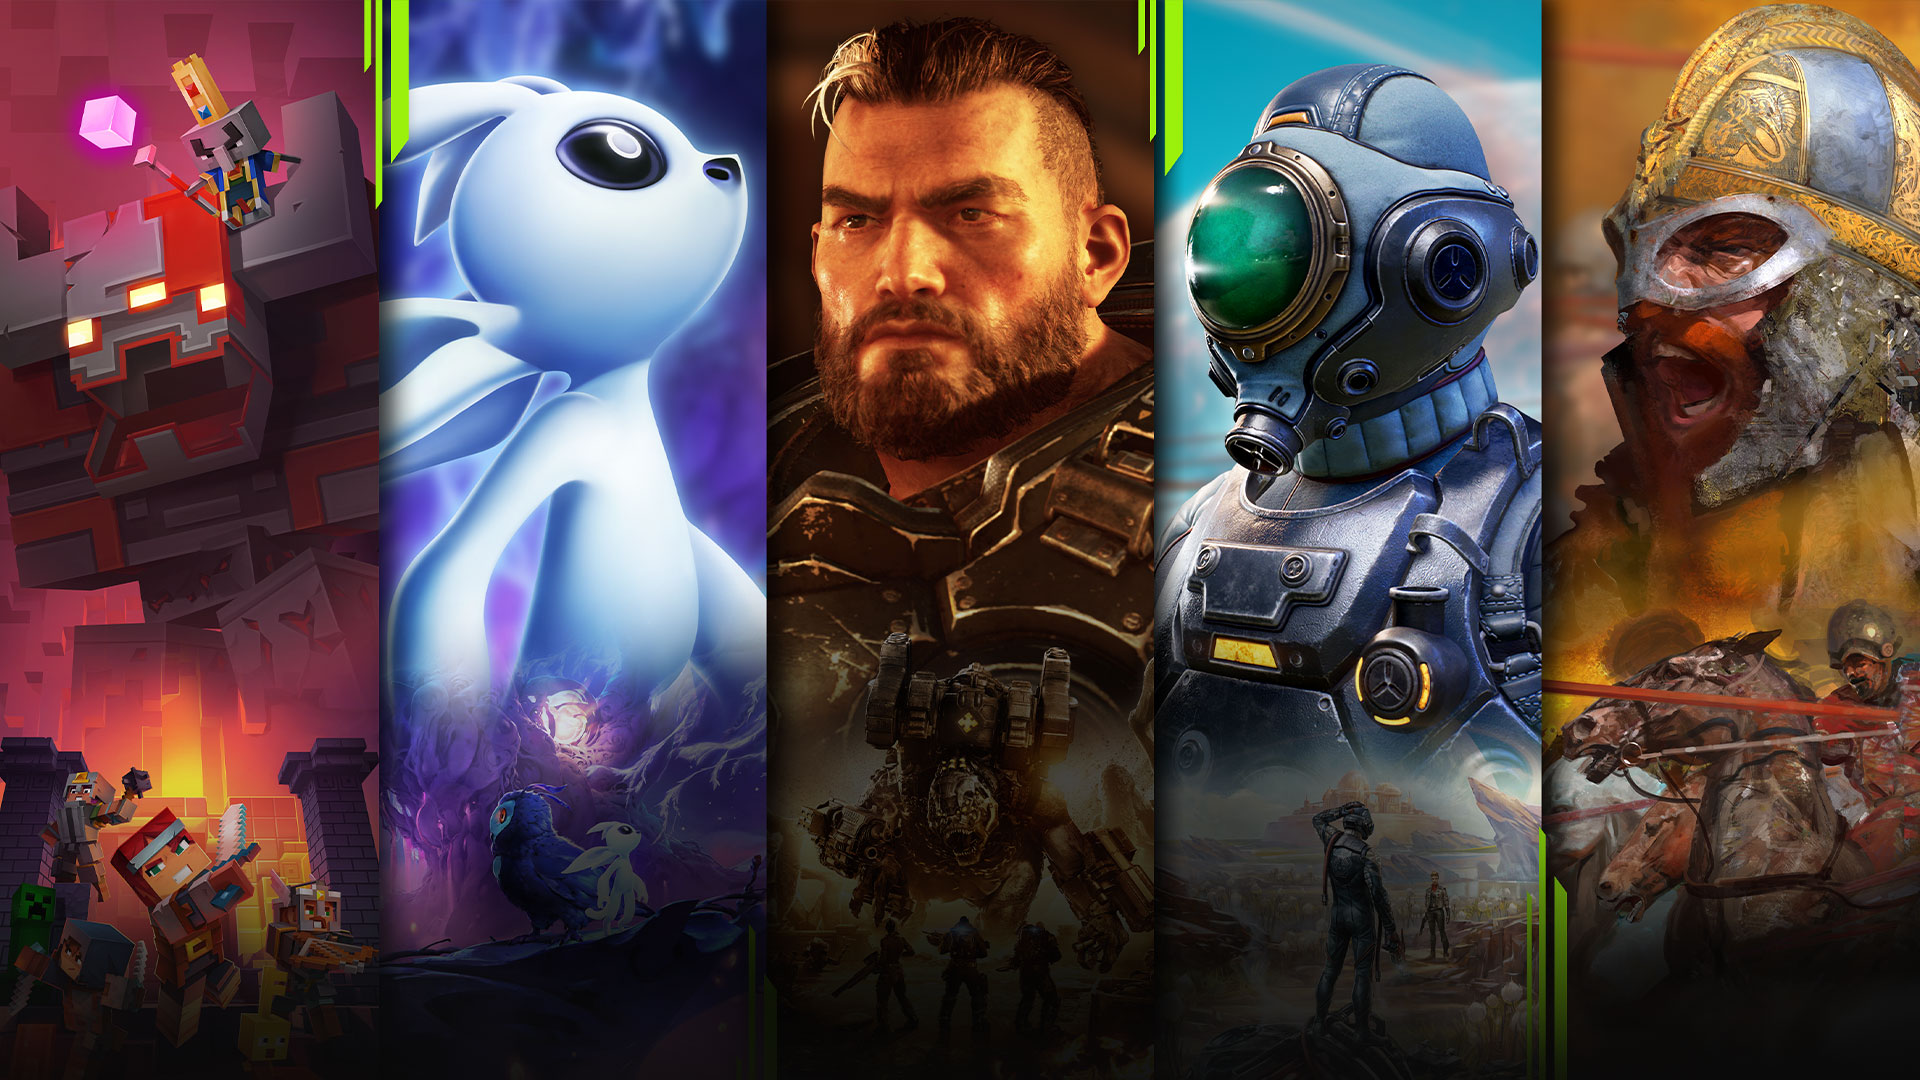 Game art from multiple games available with Xbox Game Pass for PC including Minecraft Dungeons, Ori and the Will of the Wisps, Gears Tactics, The Outer Worlds and Age of Empires 2: Definitive Edition.